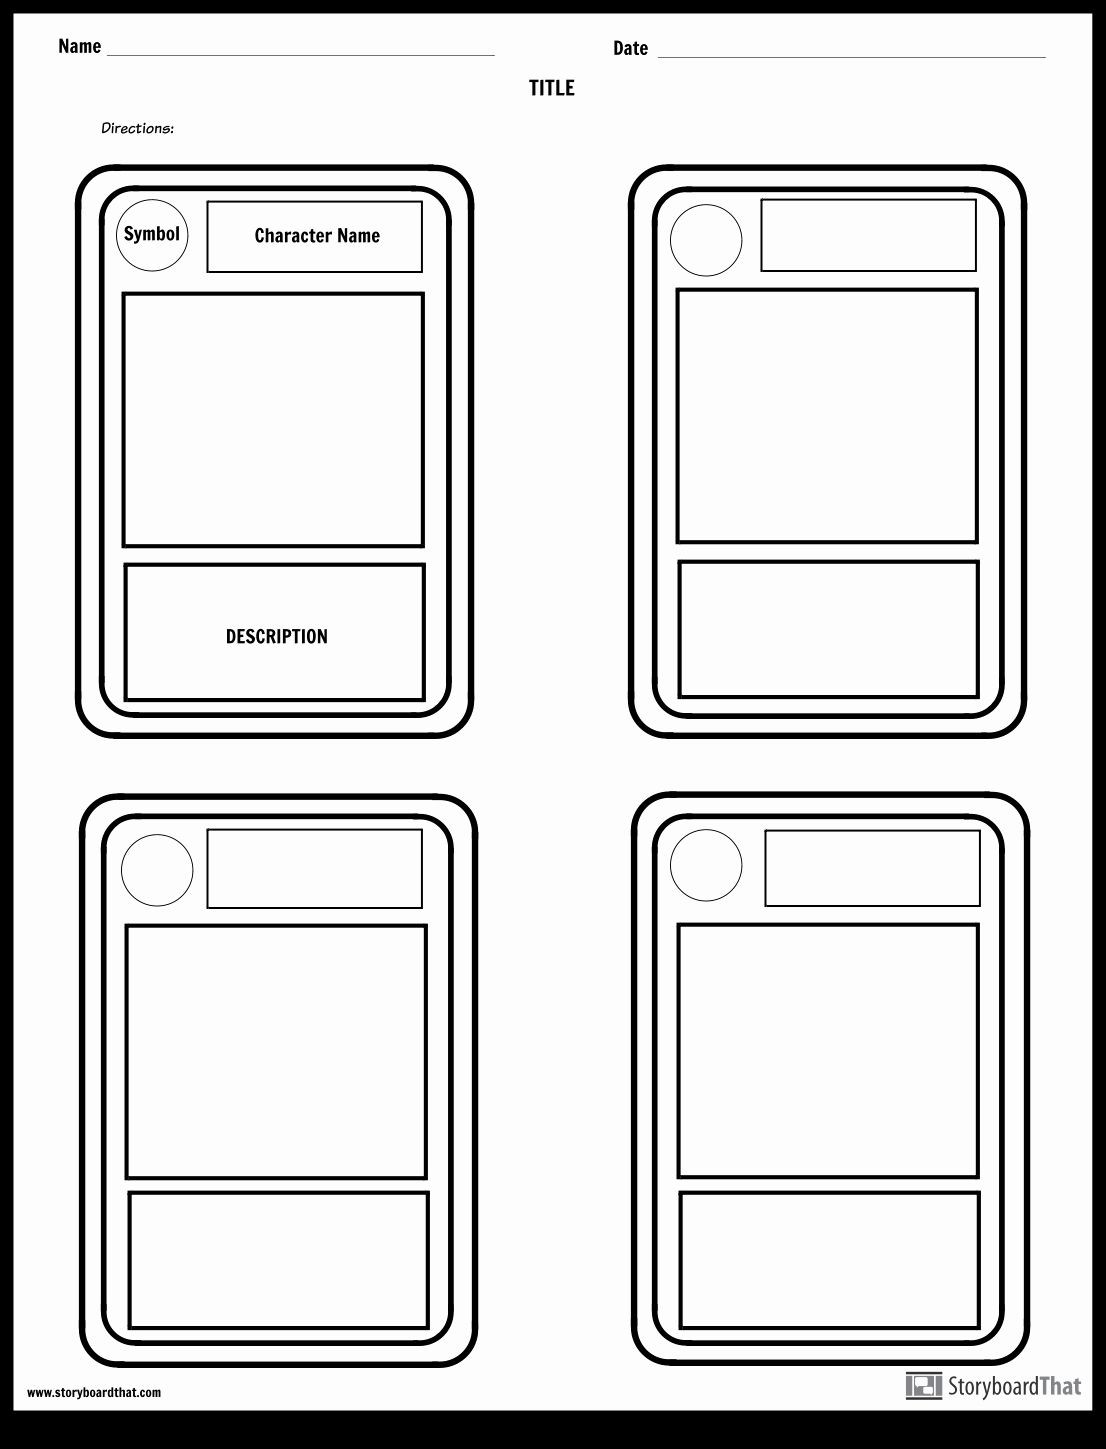 Blank Trading Card Template